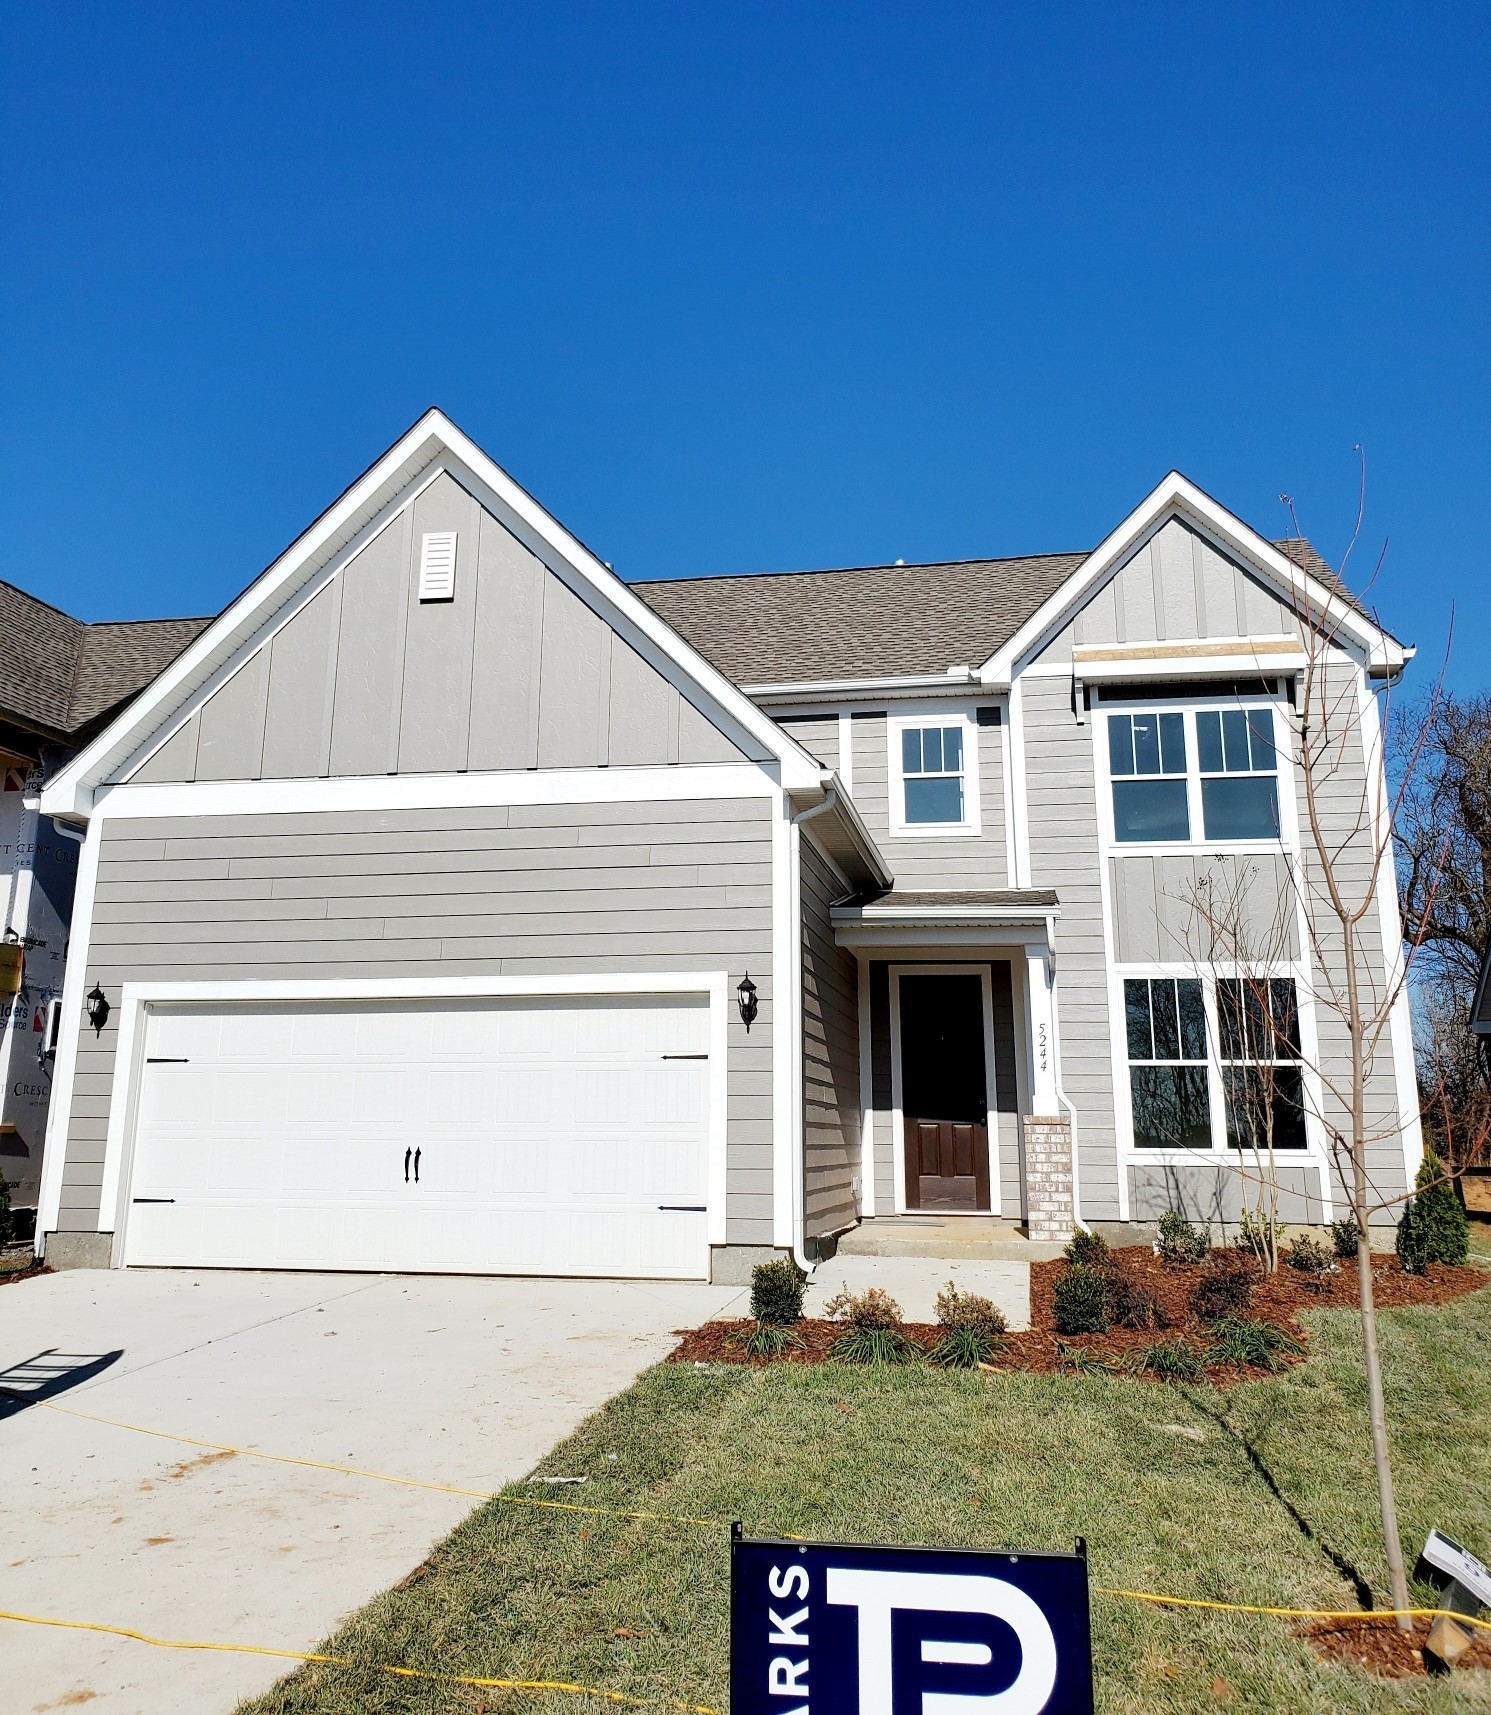 5244 Pointer Place Lot 9, Murfreesboro, TN 37129 - Murfreesboro, TN real estate listing